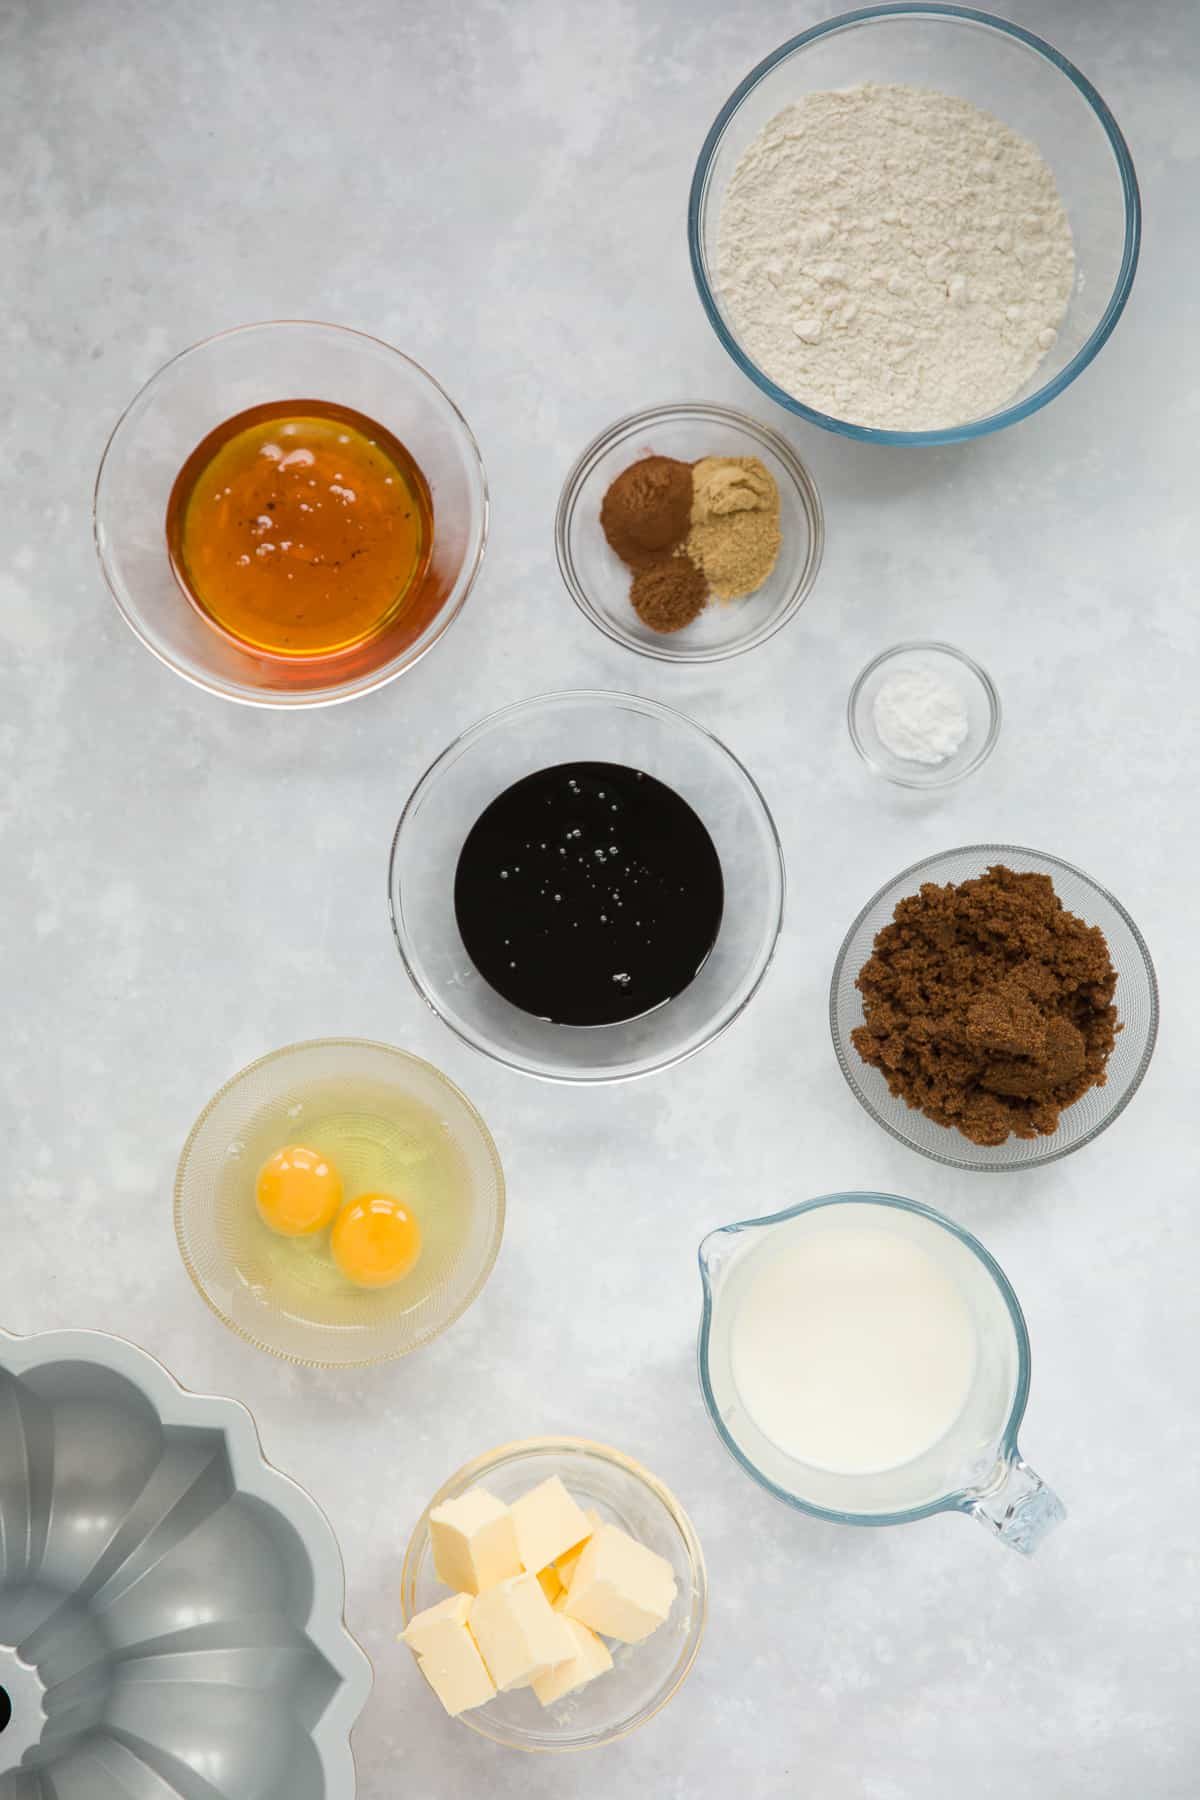 The ingredients needed for making a gingerbread bundt cake.